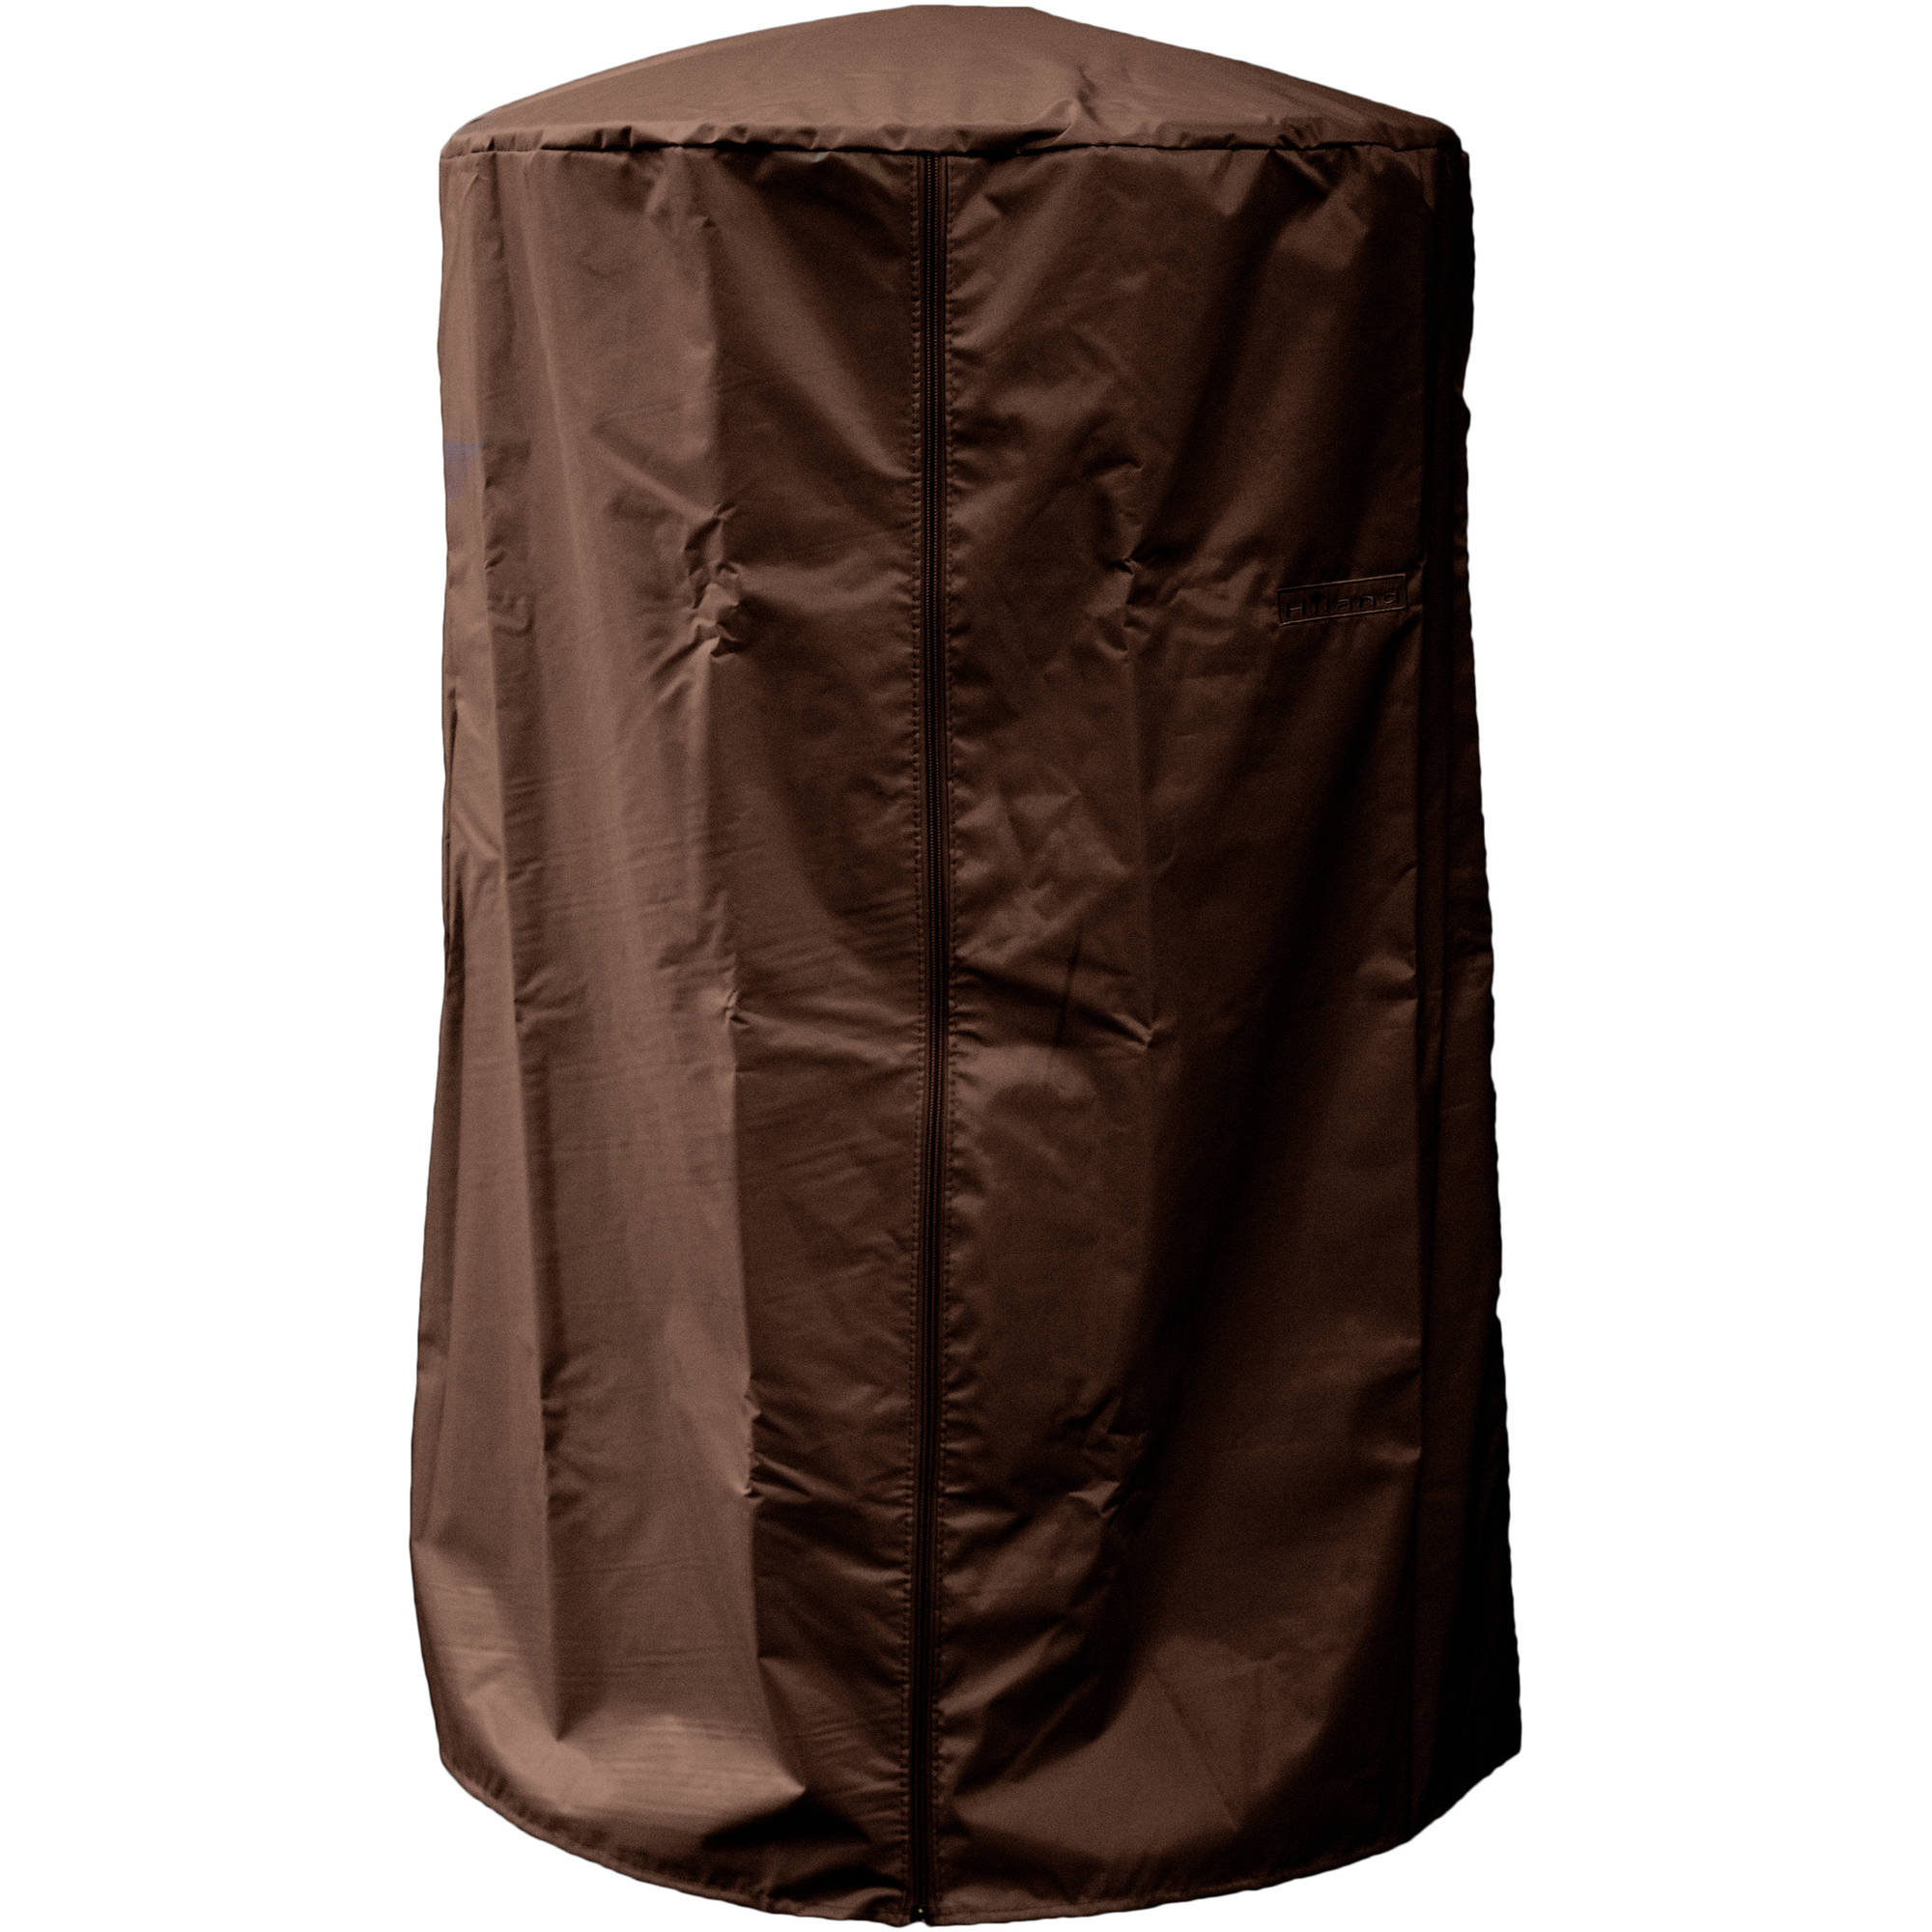 Hiland Heavy-Duty Tabletop Patio Heater Cover, Mocha